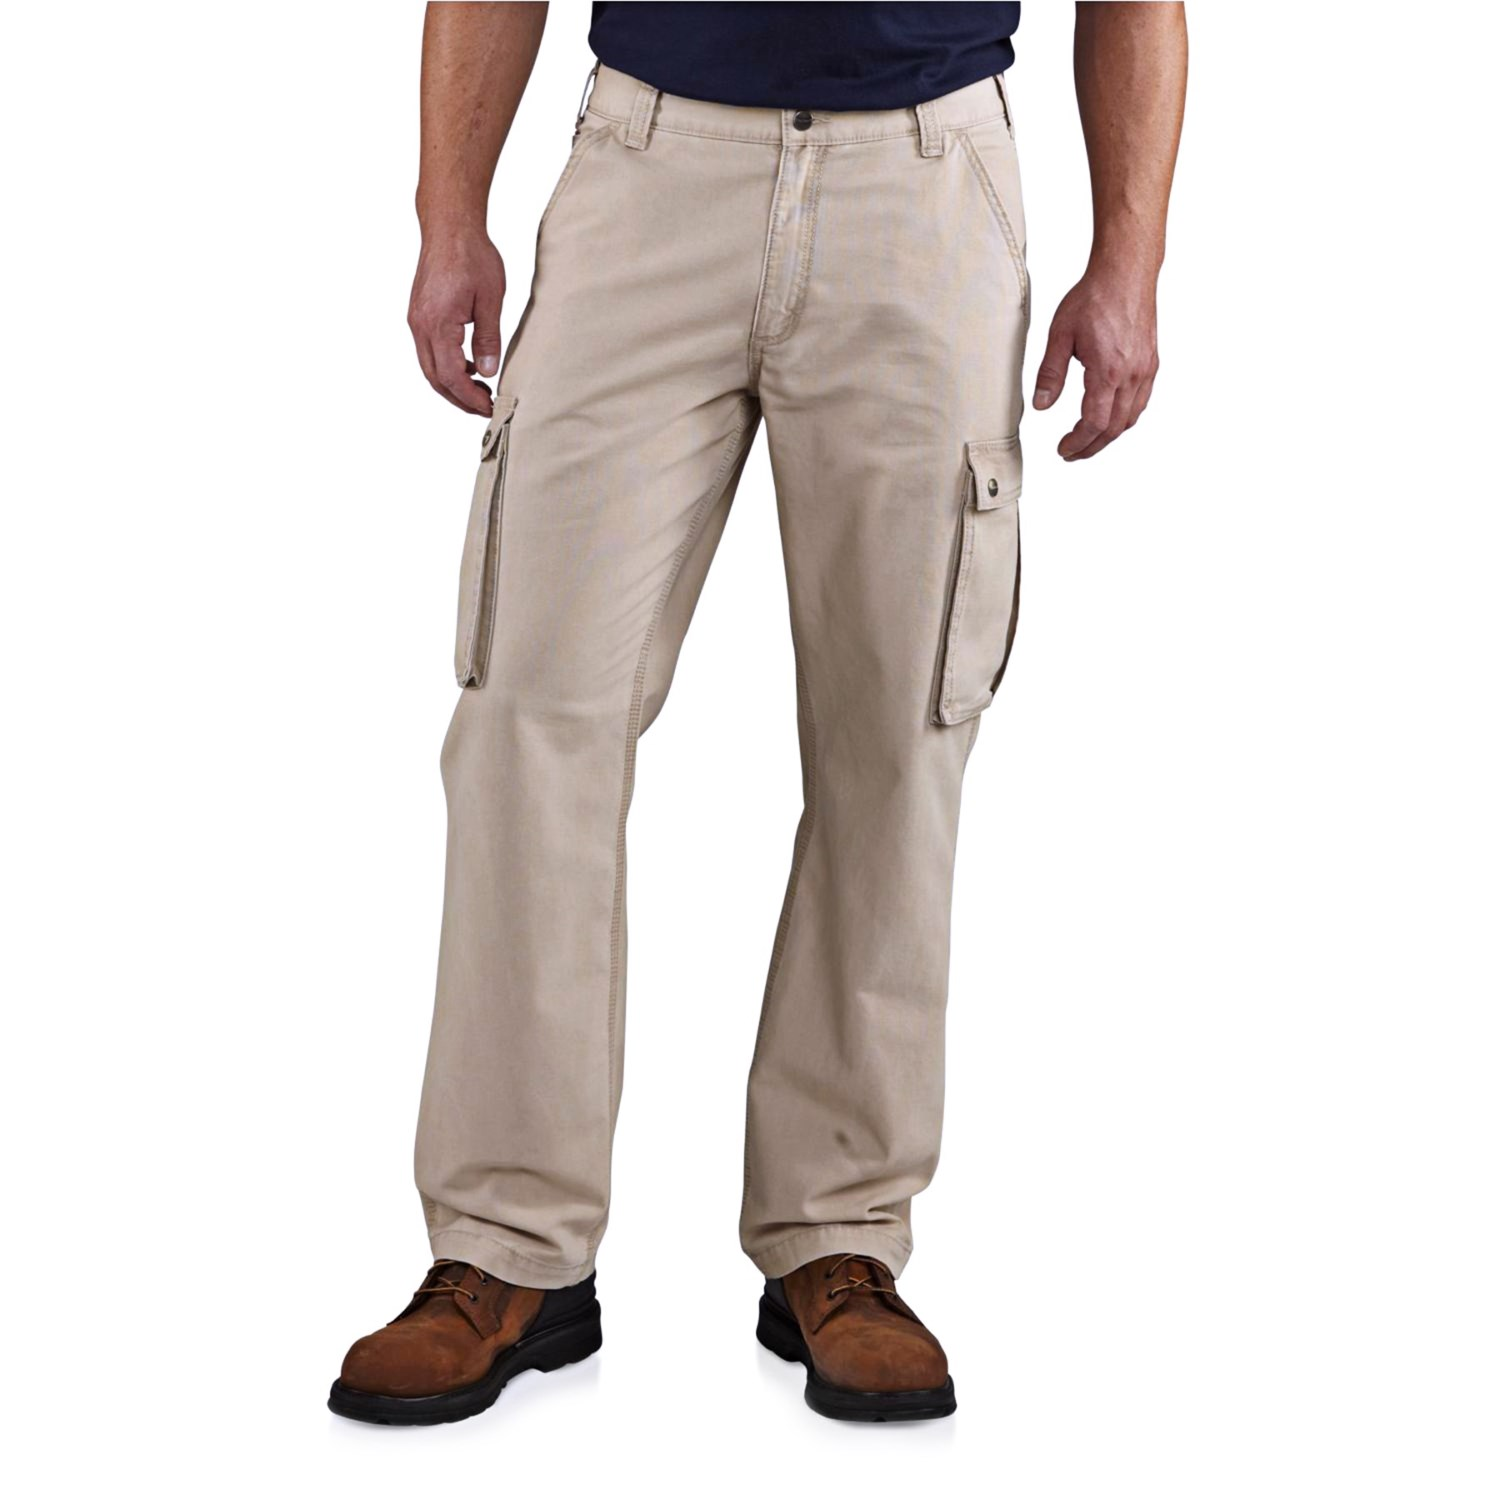 Find great deals on eBay for tan mens cargo pants. Shop with confidence. Skip to main content. eBay: Men's Wrangler Tan Cargo Pants 34